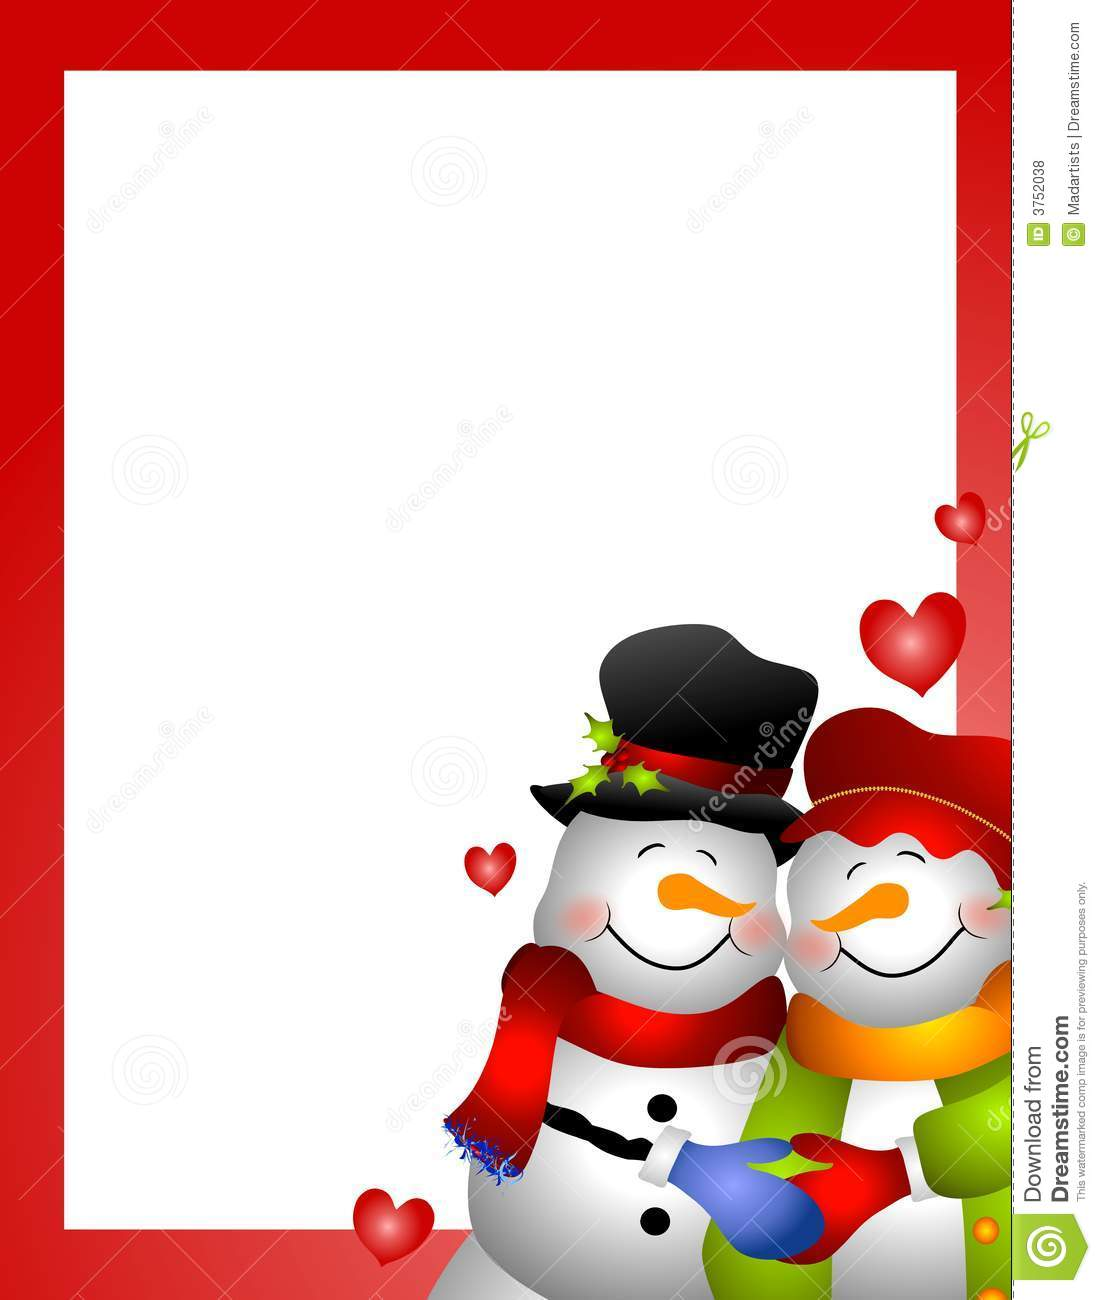 snow woman clipart - photo #39